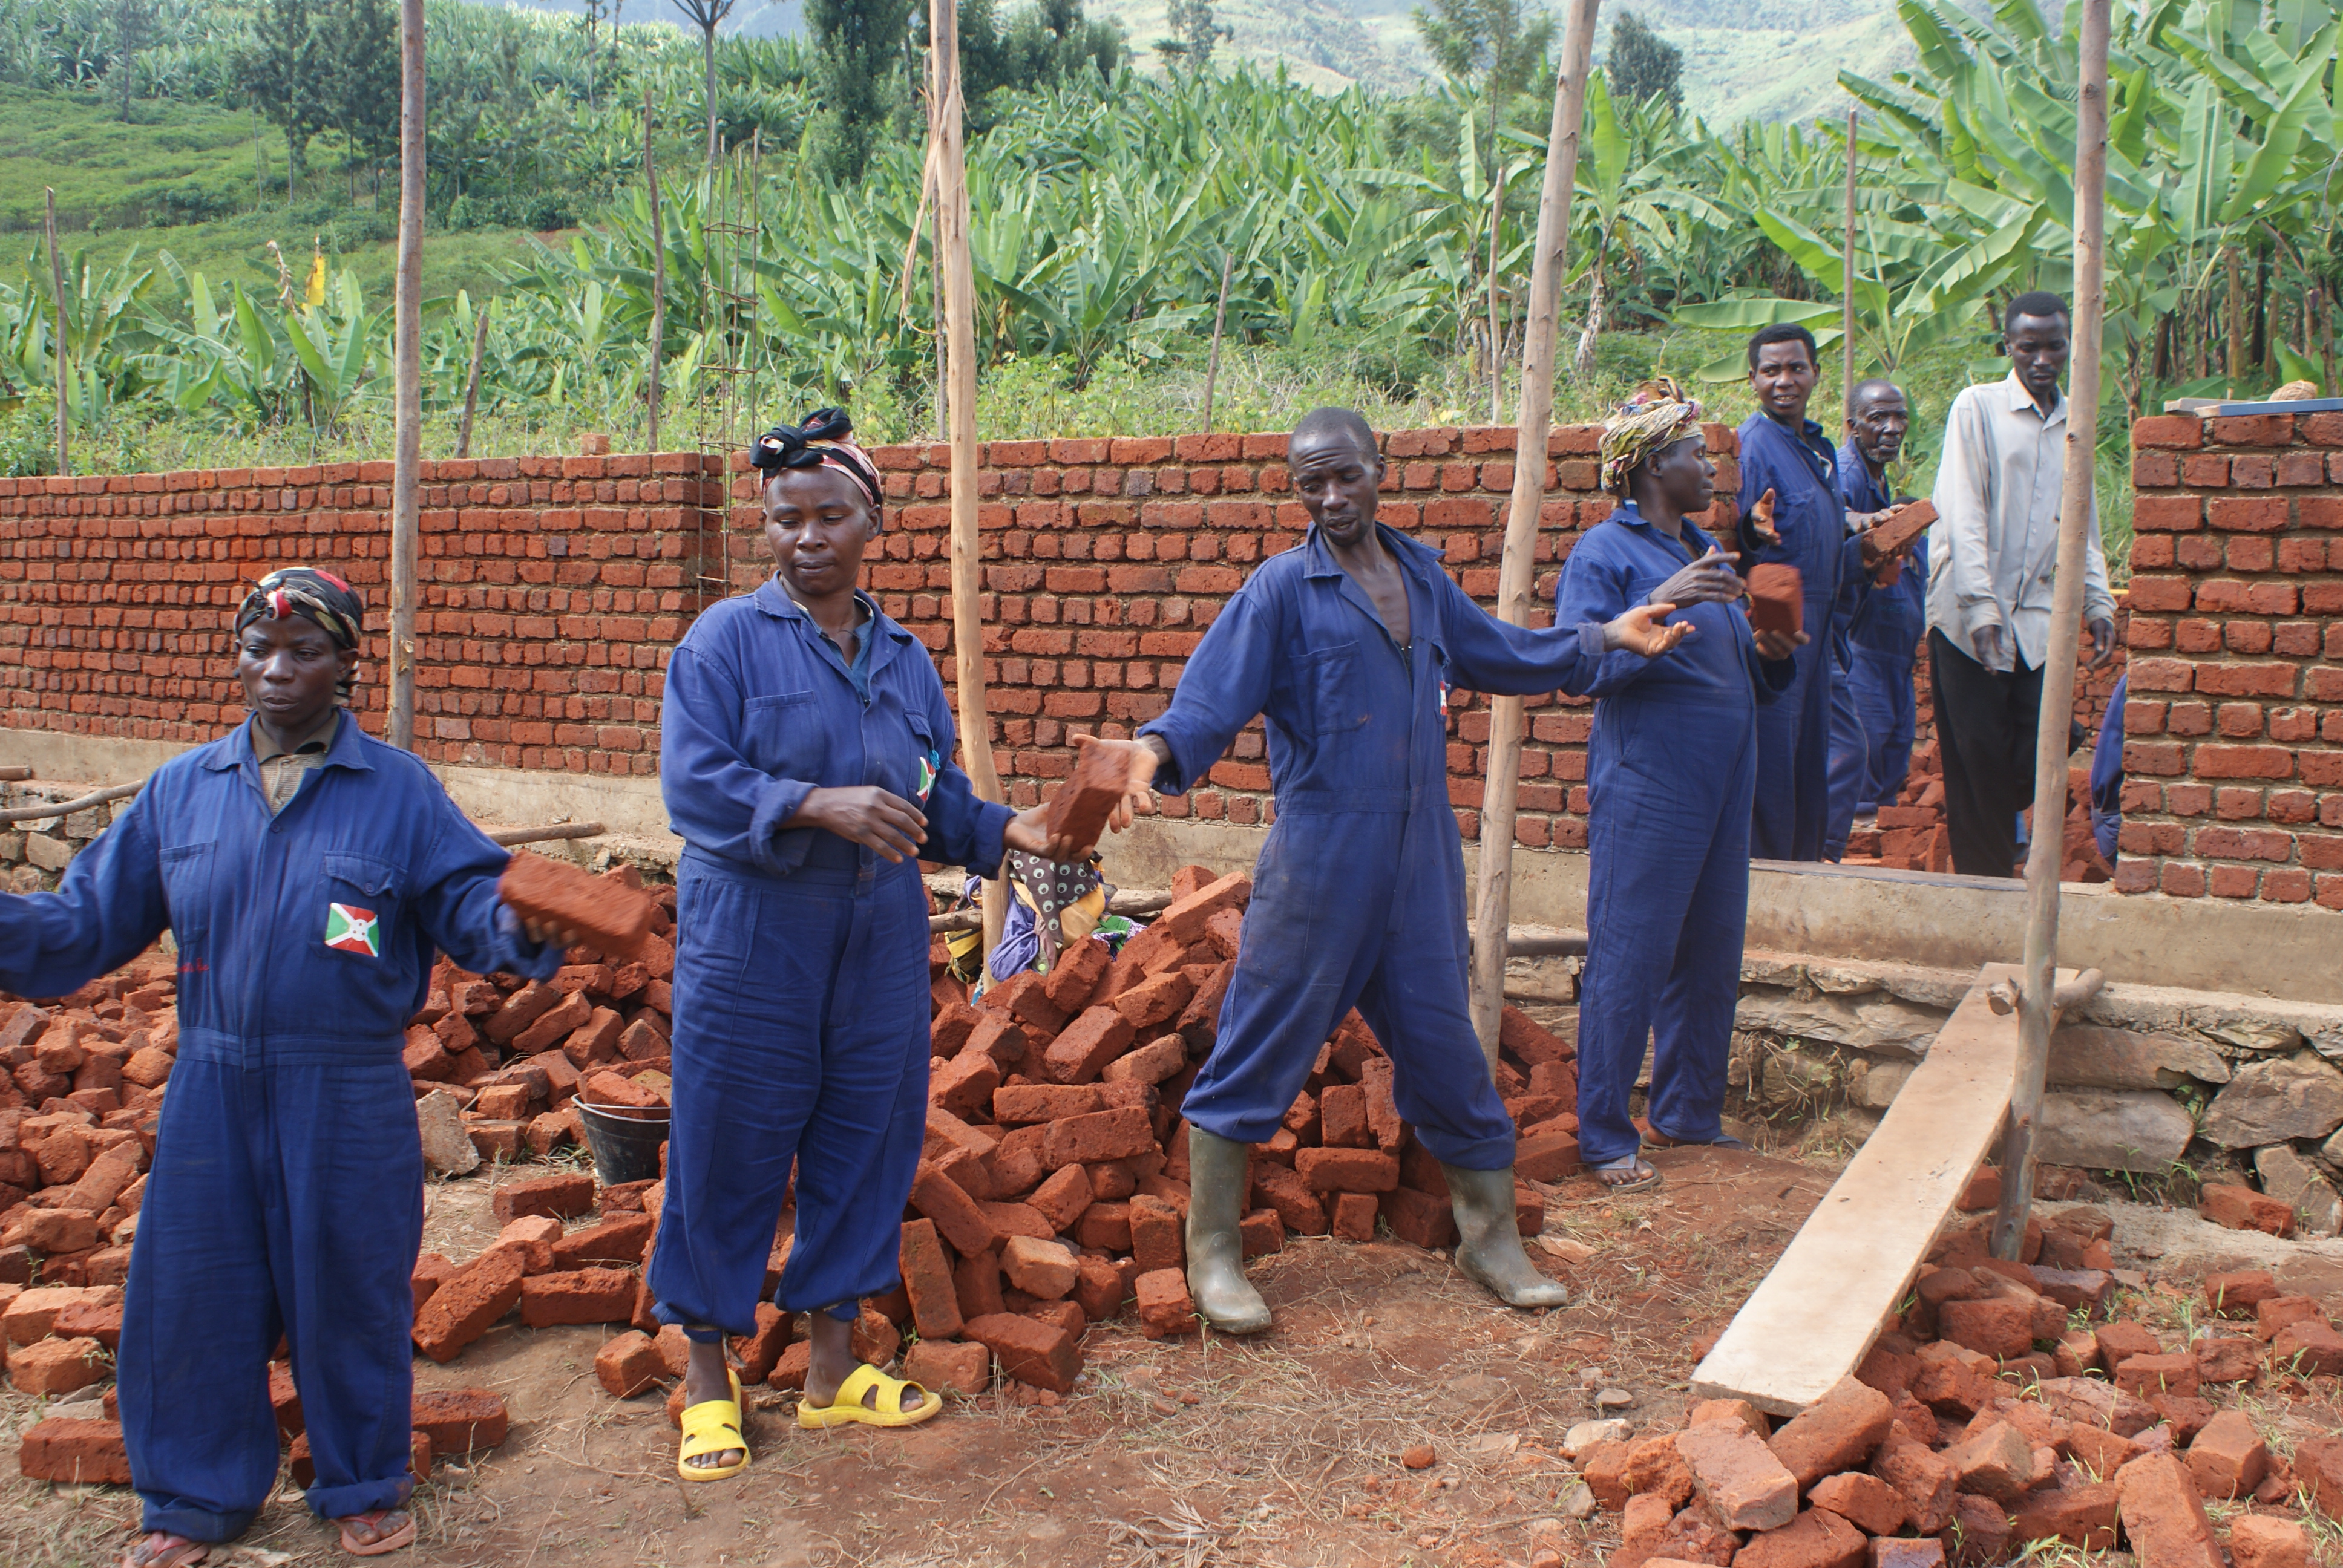 Shows an assembly line of people passing along bricks as they take part in a construction.